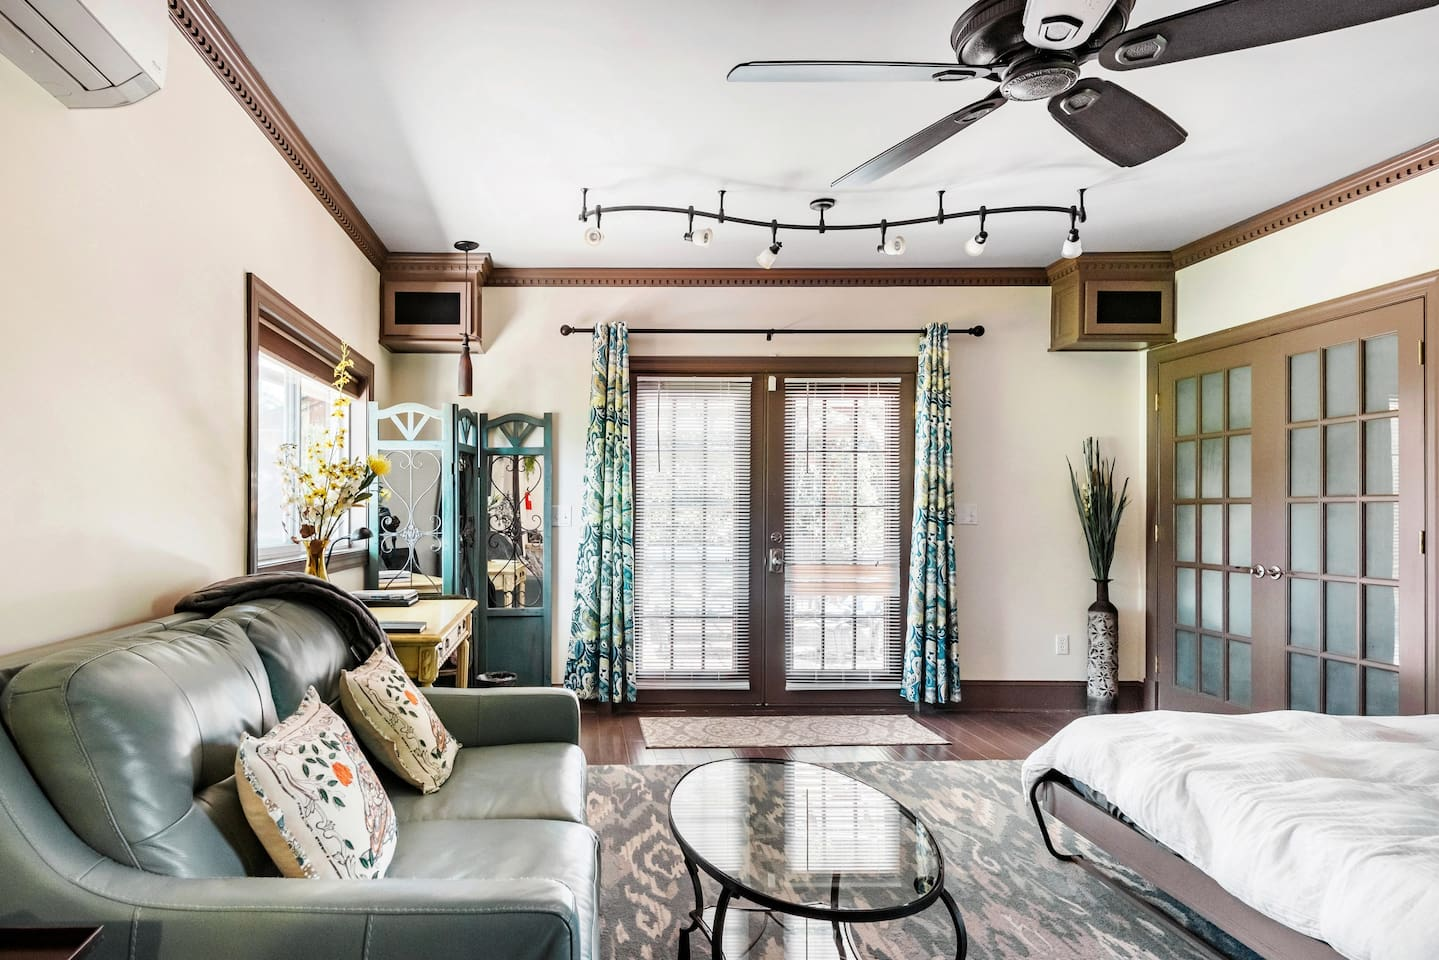 Enjoy Social Distancing in a Secluded Luxary Suite - Airbnb Virginia Beach